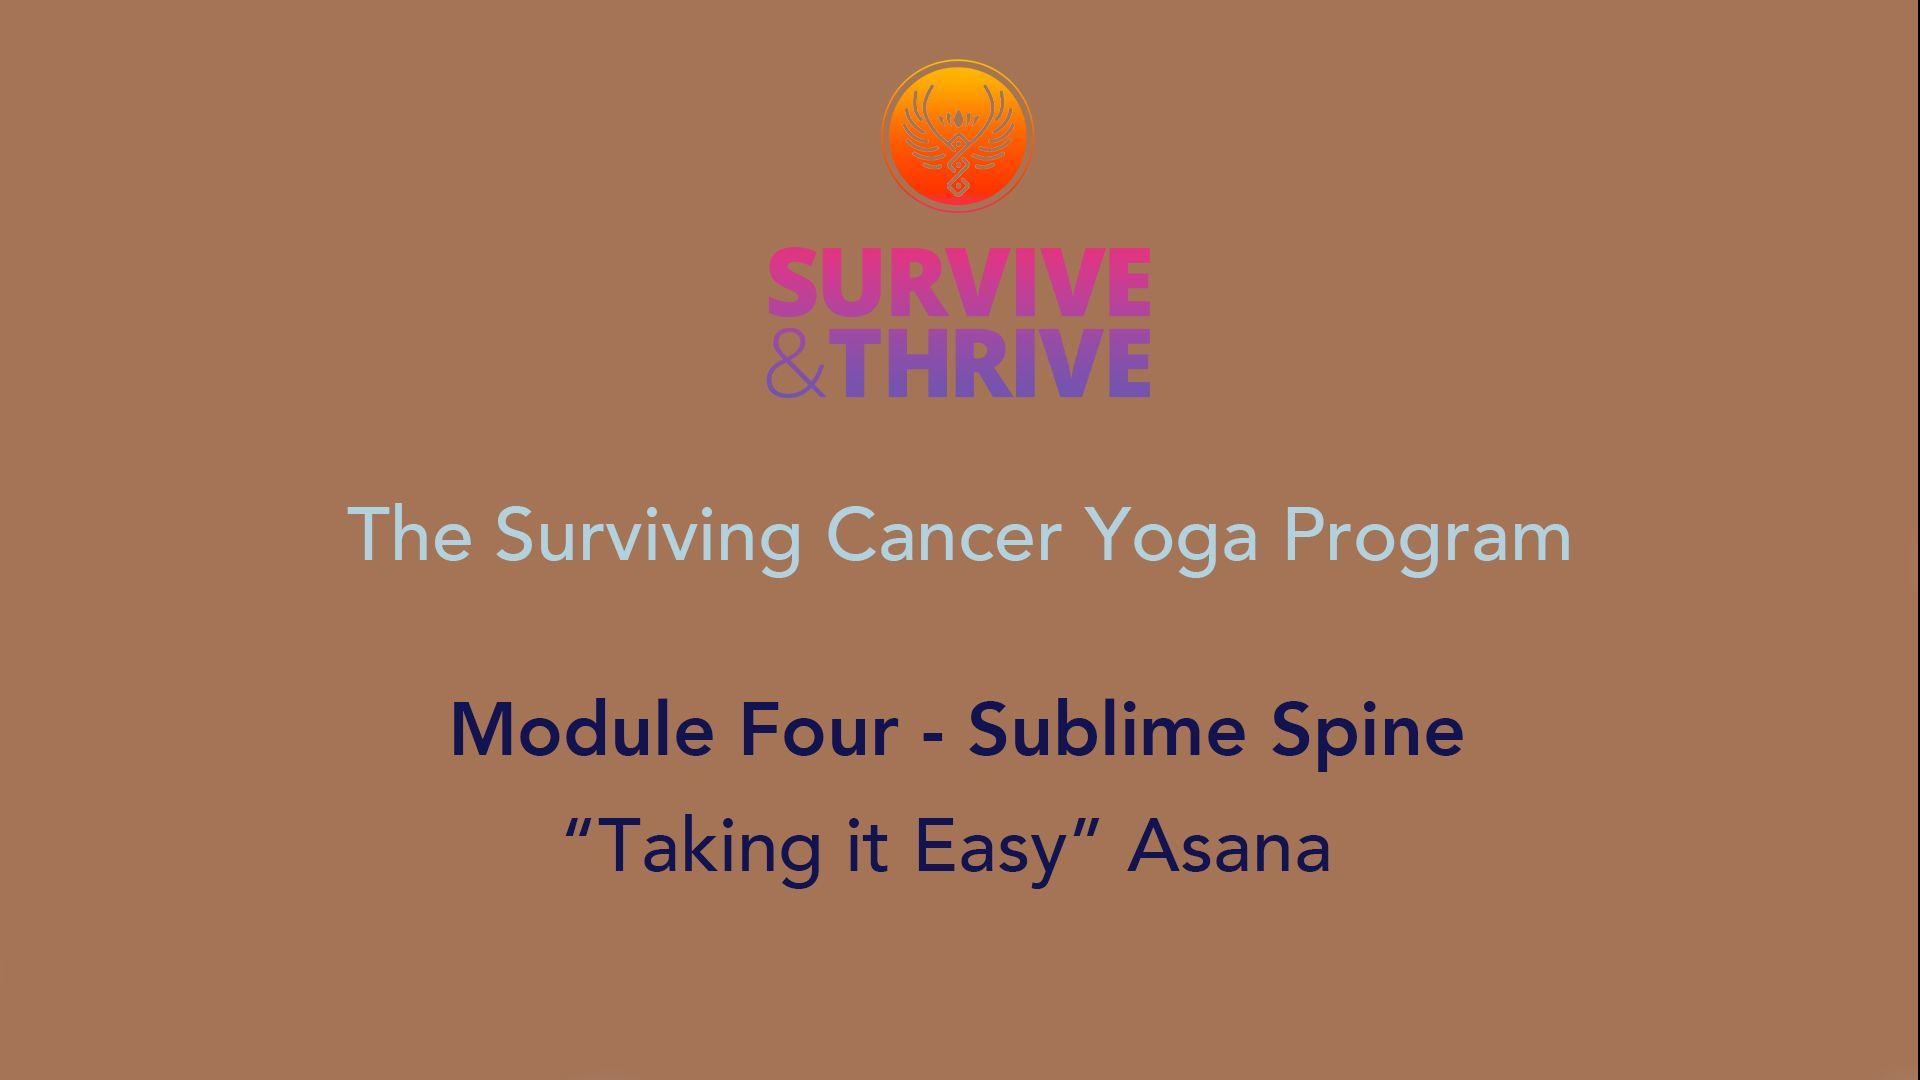 SURVIVE AND THRIVE | MODULE 4 - SUBLIME SPINE | TAKING IT EASY ASANA